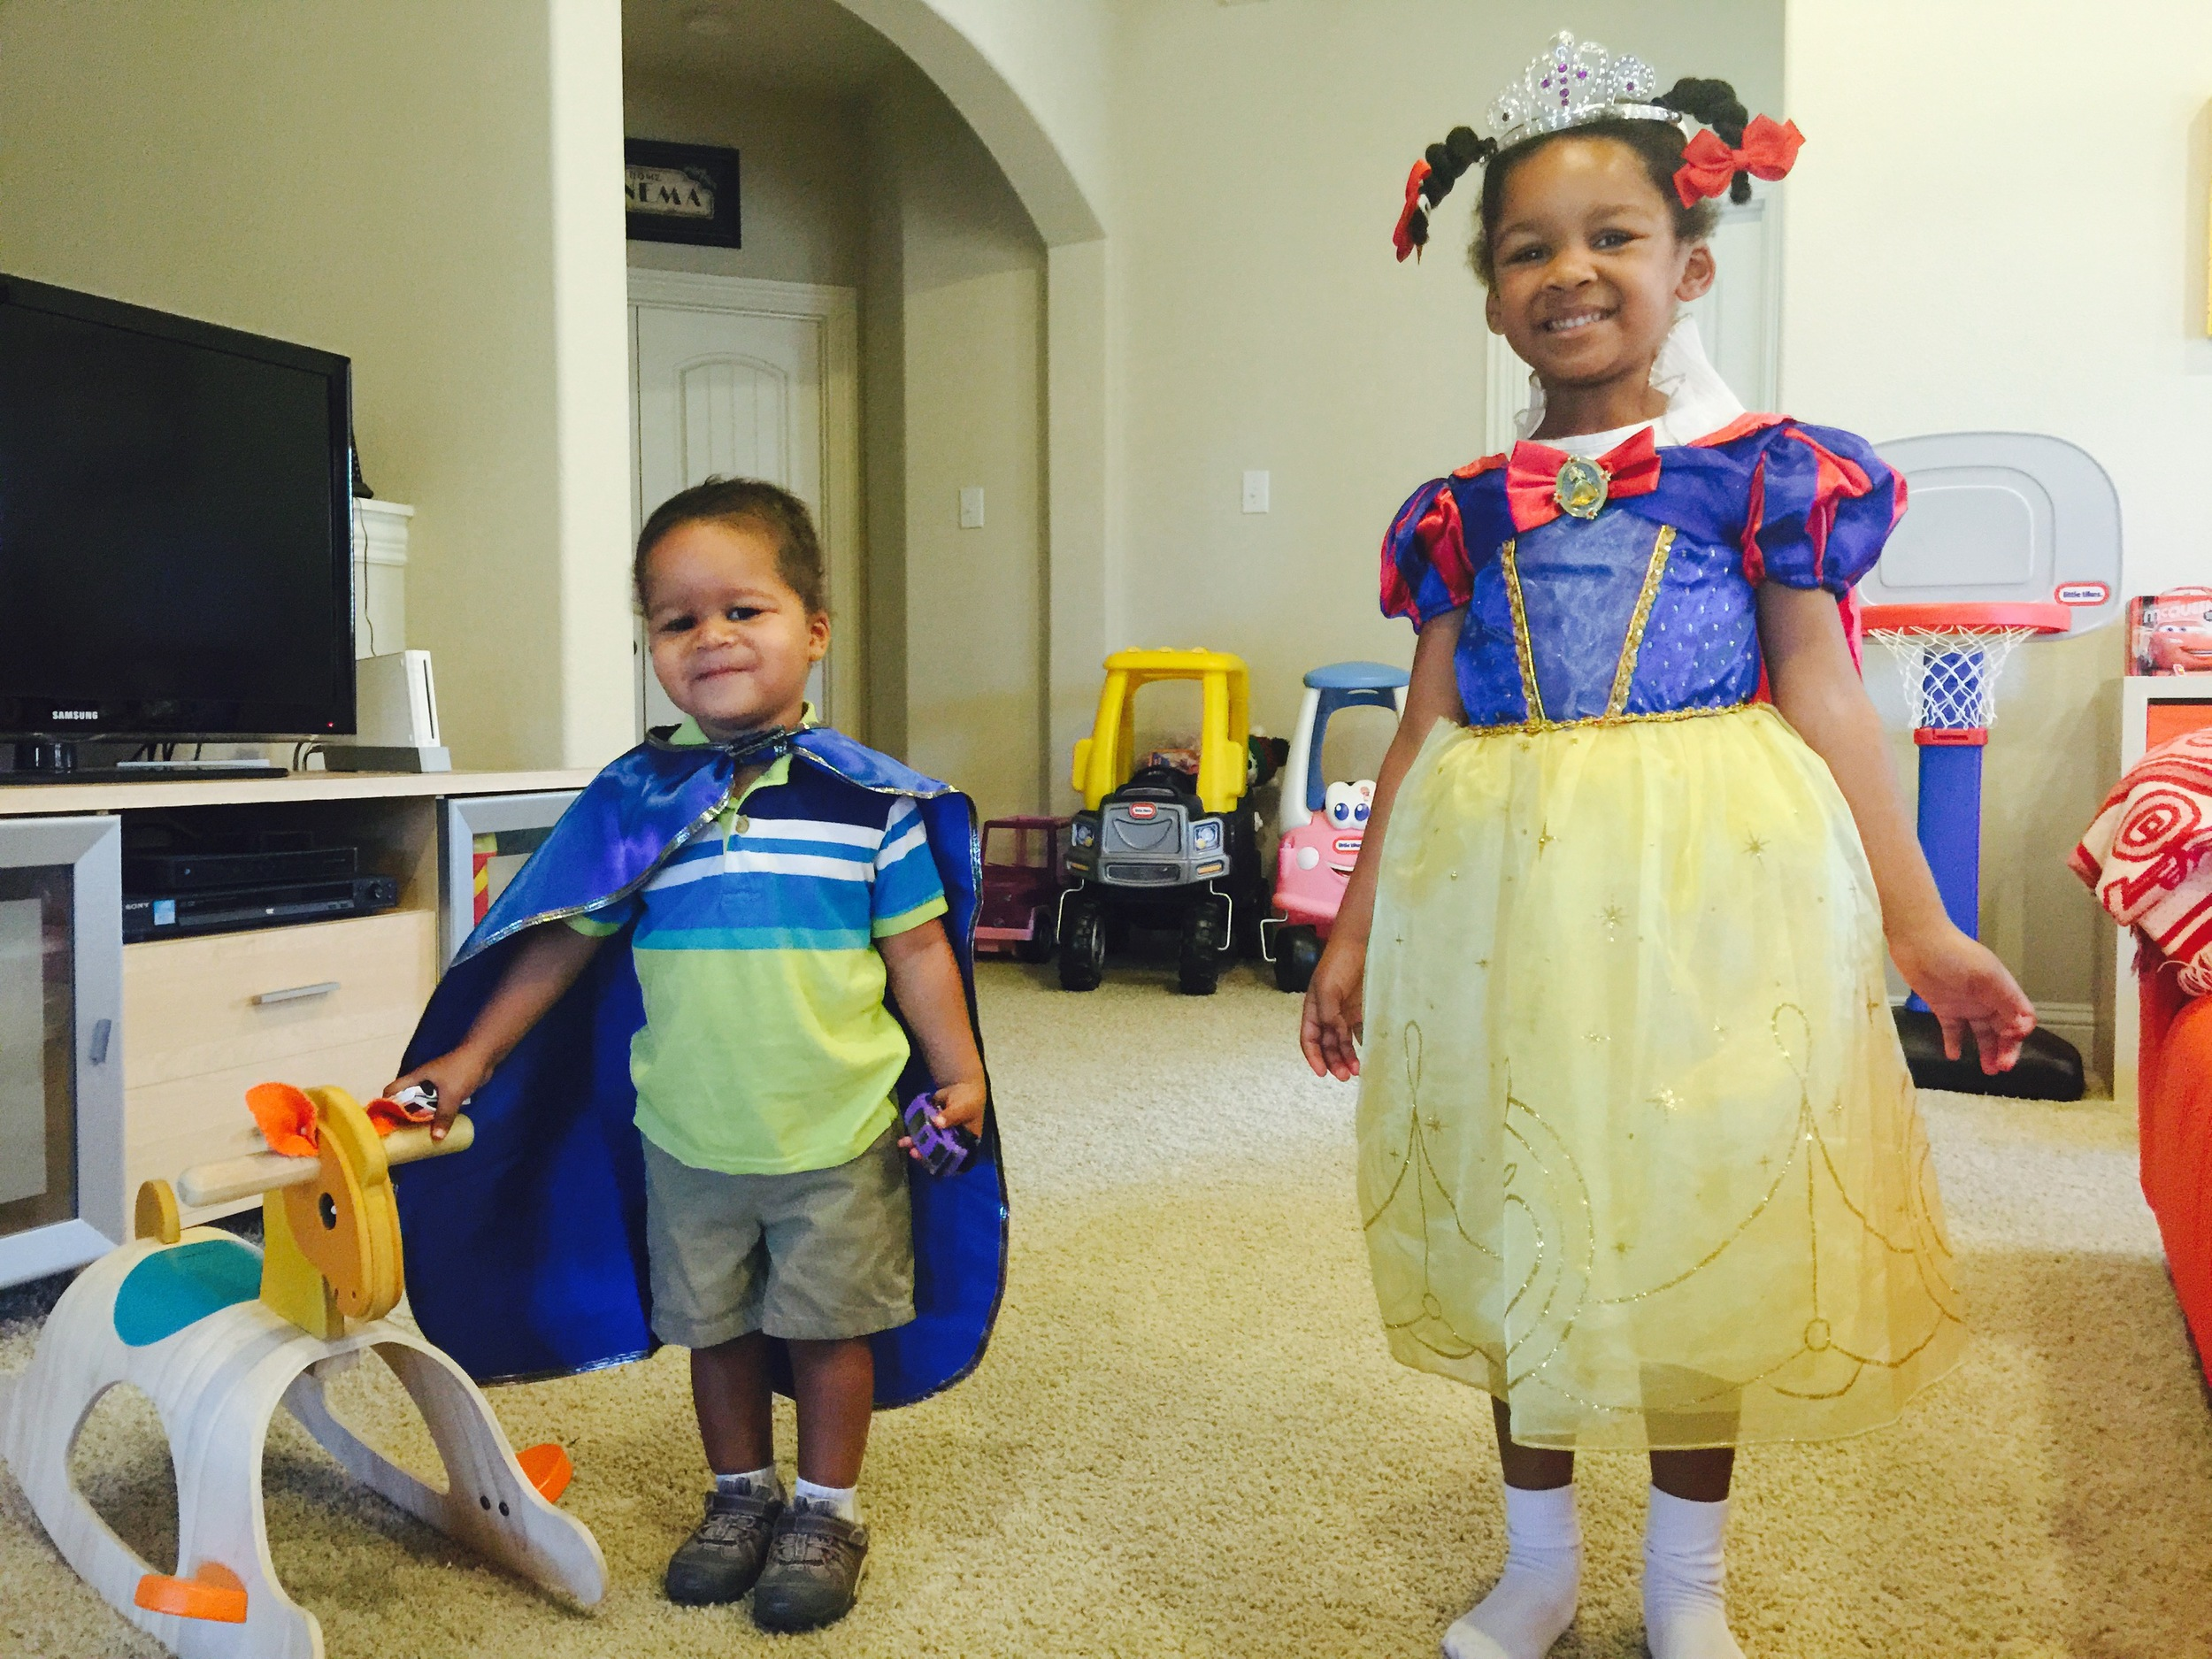 Day 352: Dress Like a Knight and Princess Day at School